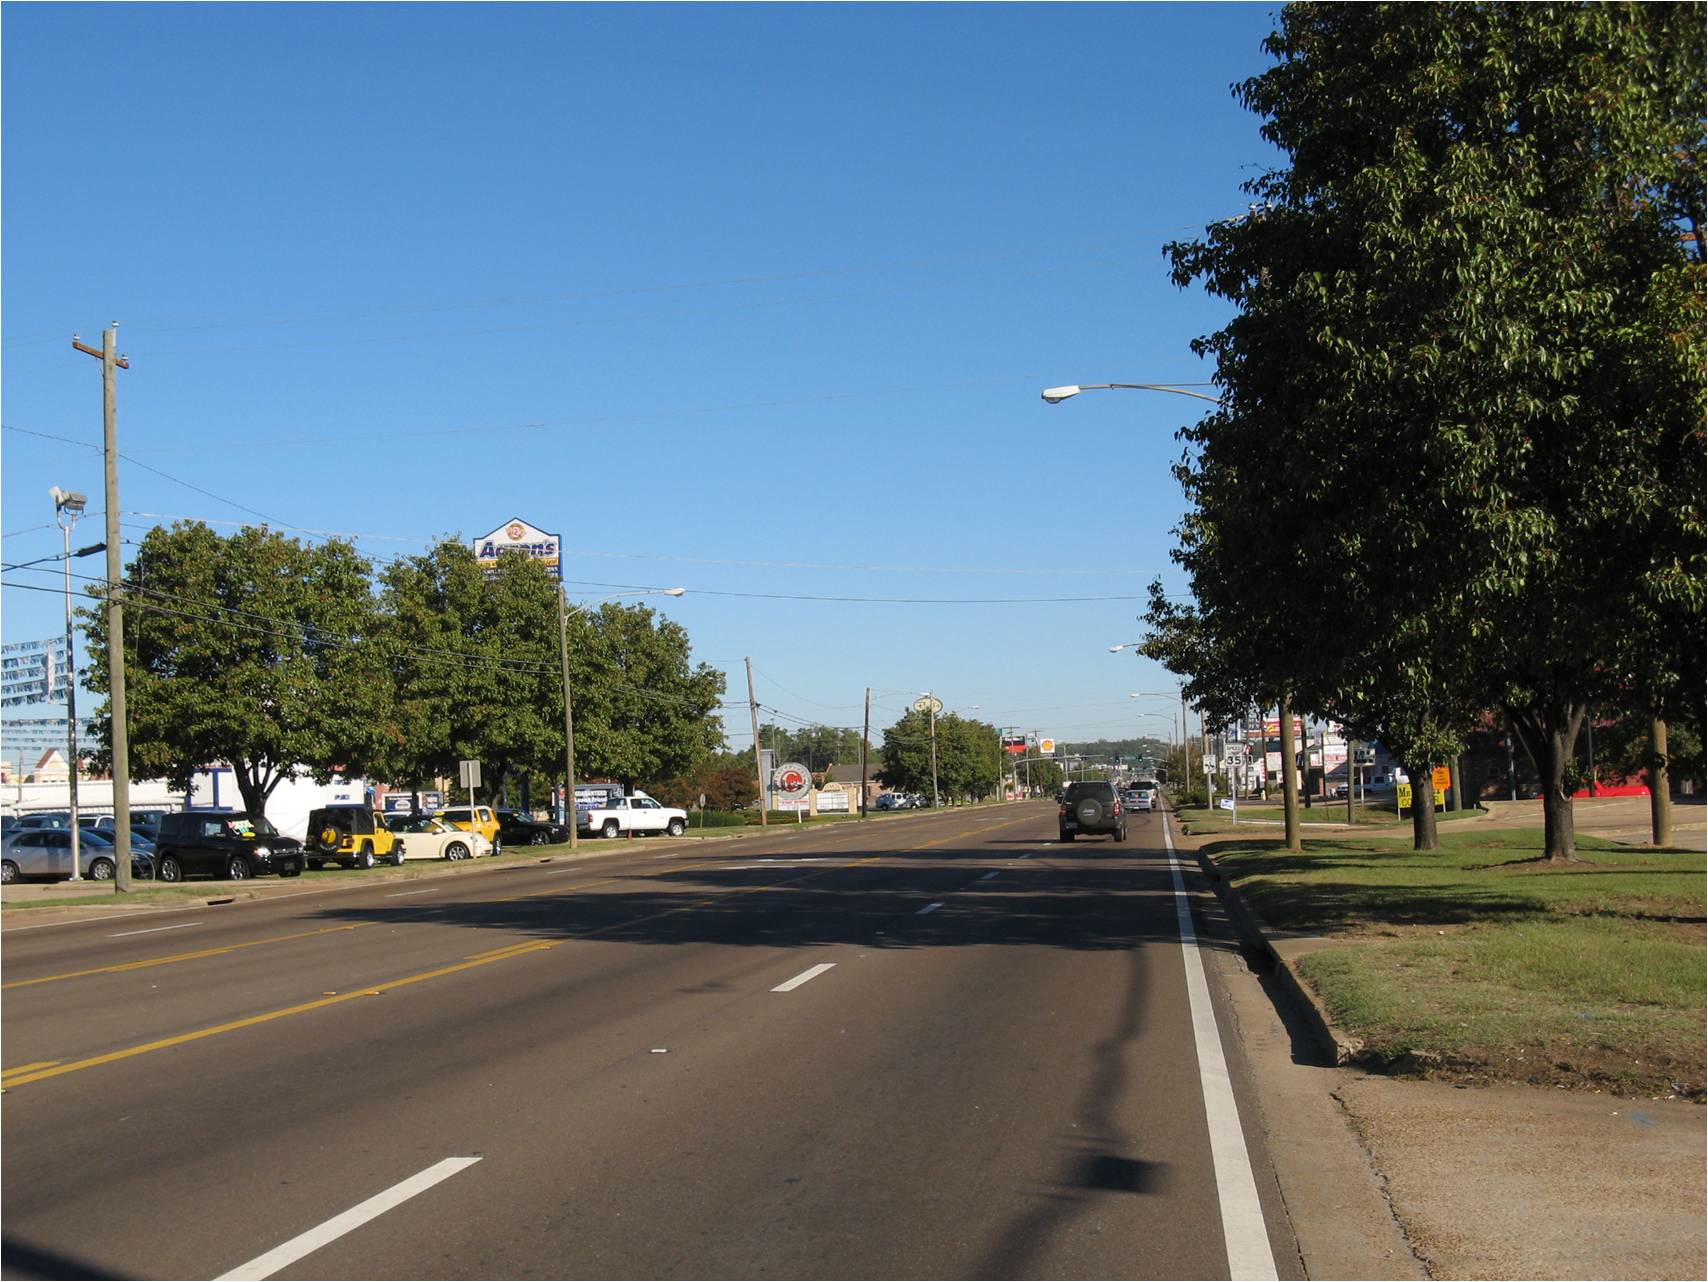 Archusa Avenue as you enter Quitman, Mississippi.